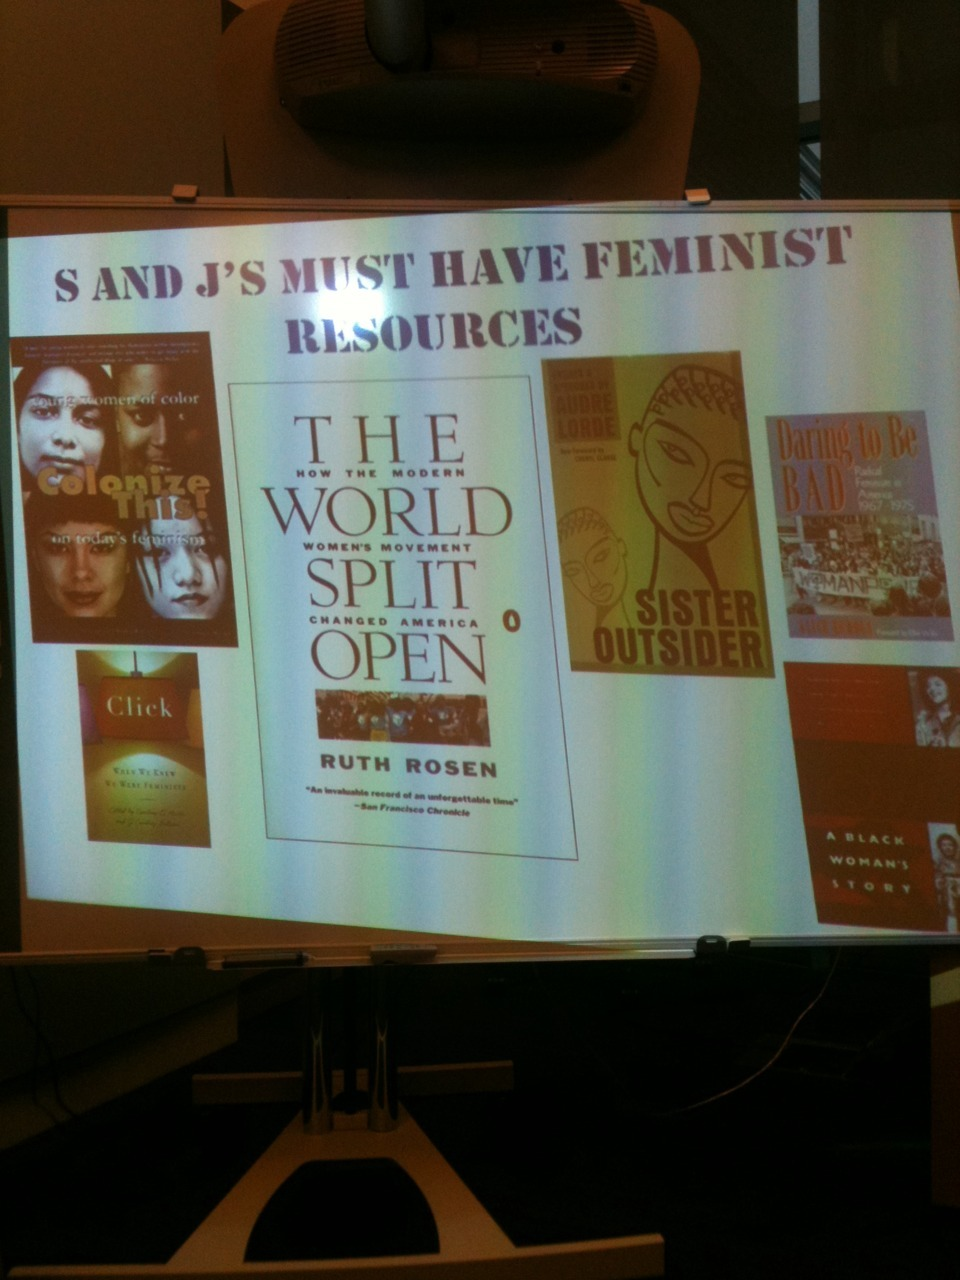 SHELBY KNOX & JAMIA WILSON'S MUST-READ FEMINIST TEXTS: Sister Outsider by Audre Lorde Daring to be Bad by Alice Echols Click by J. Courtney Sullivan and Courtney E. Martin A Taste of Power: A Black Woman's Story by Elaine Brown The World Split Open by Ruth Rosen Colonize This! by Daisy Hernandez